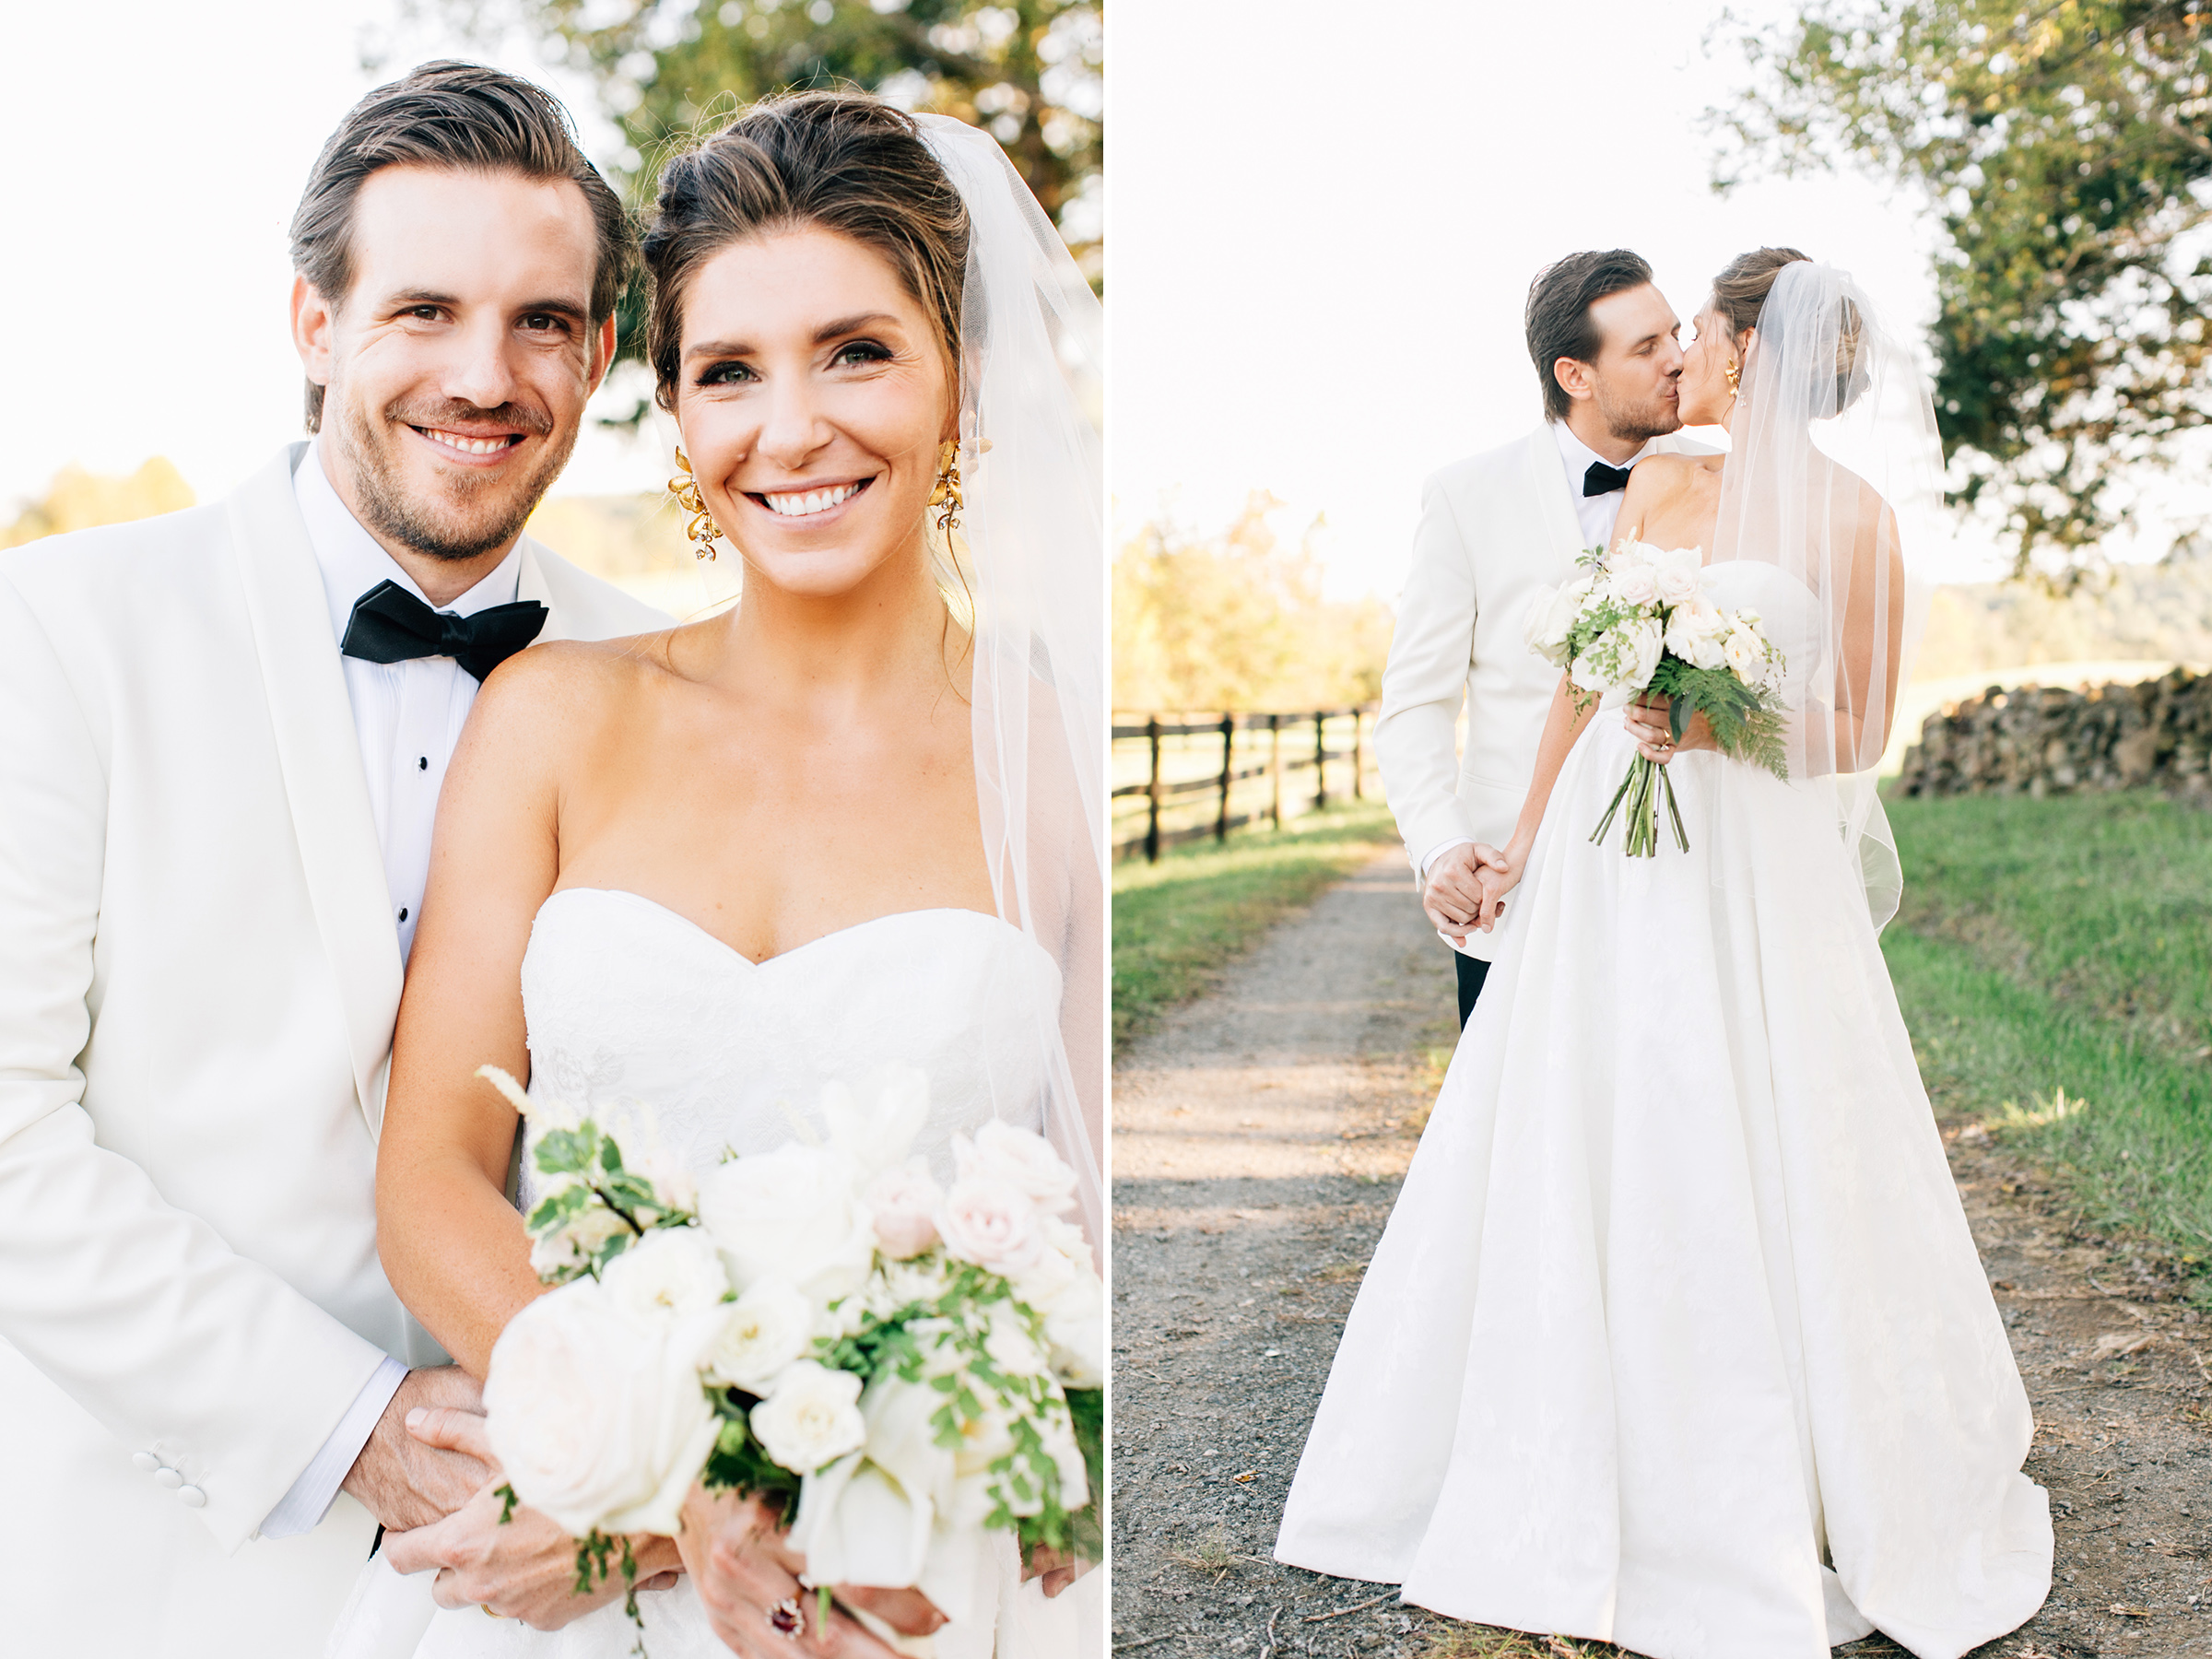 KatieStoopsPhotography-charlottesville wedding-farm wedding25.jpg